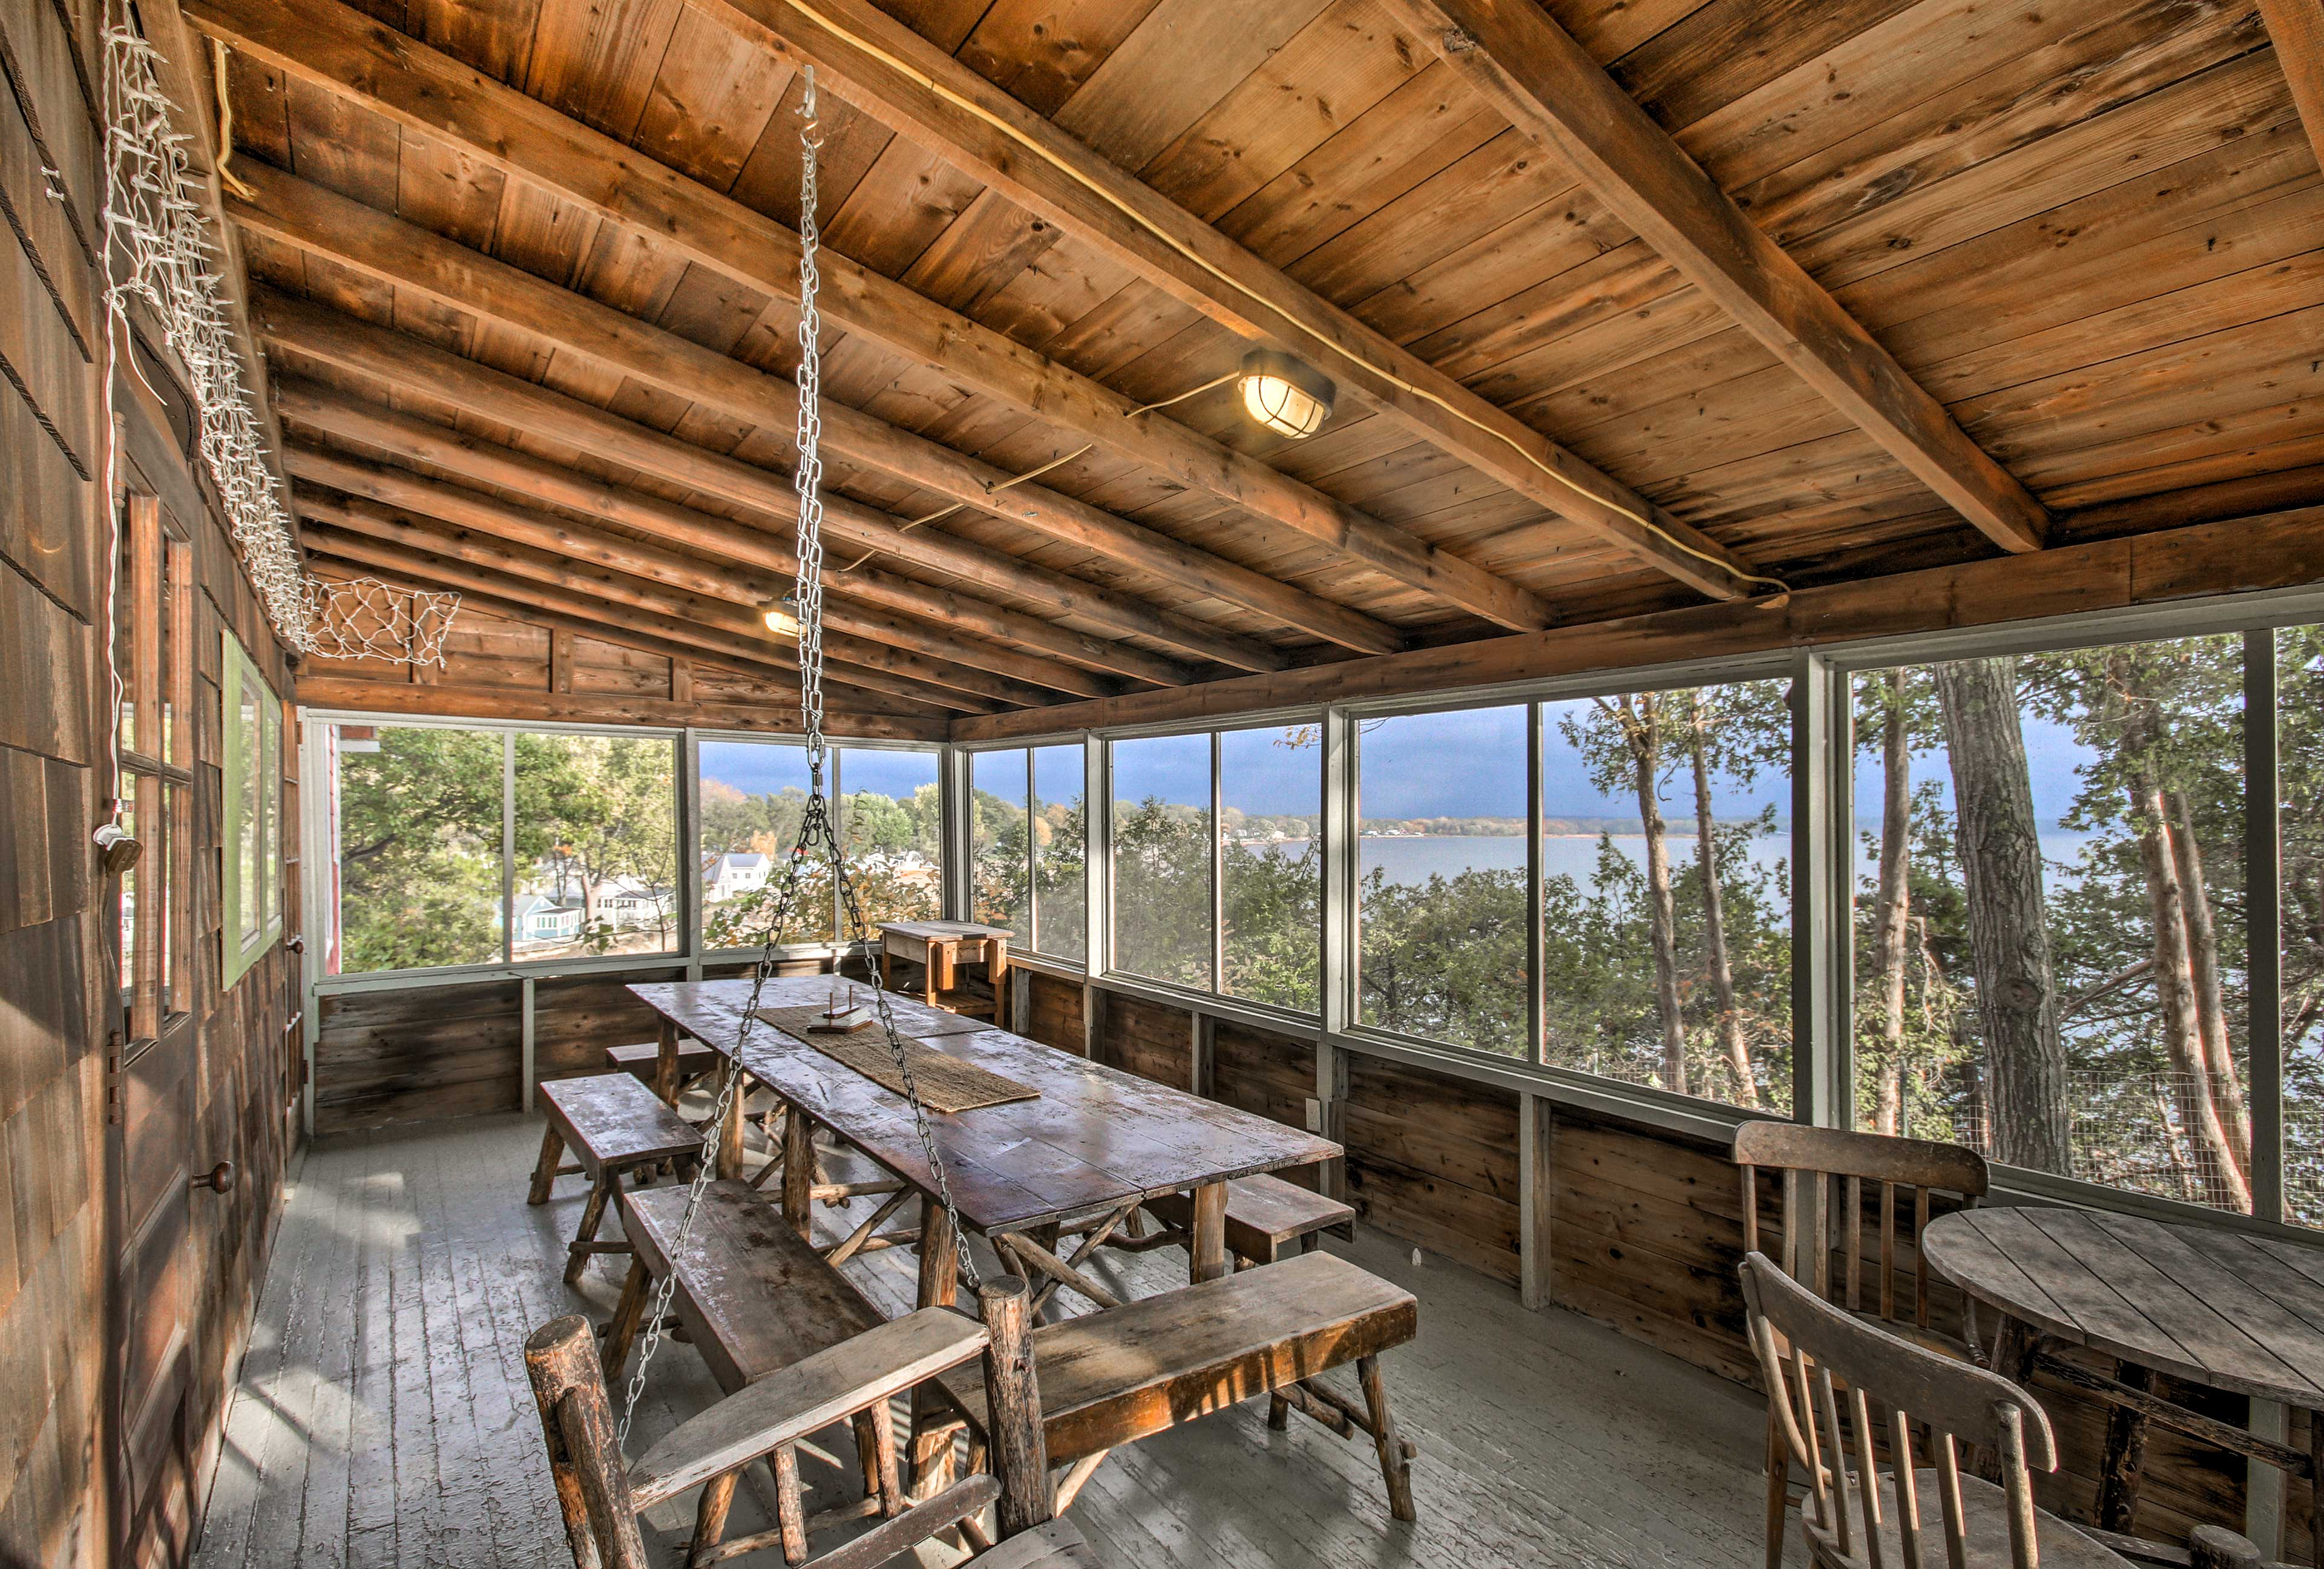 Treat the group to delicious feasts & incredible views on the screened-in porch